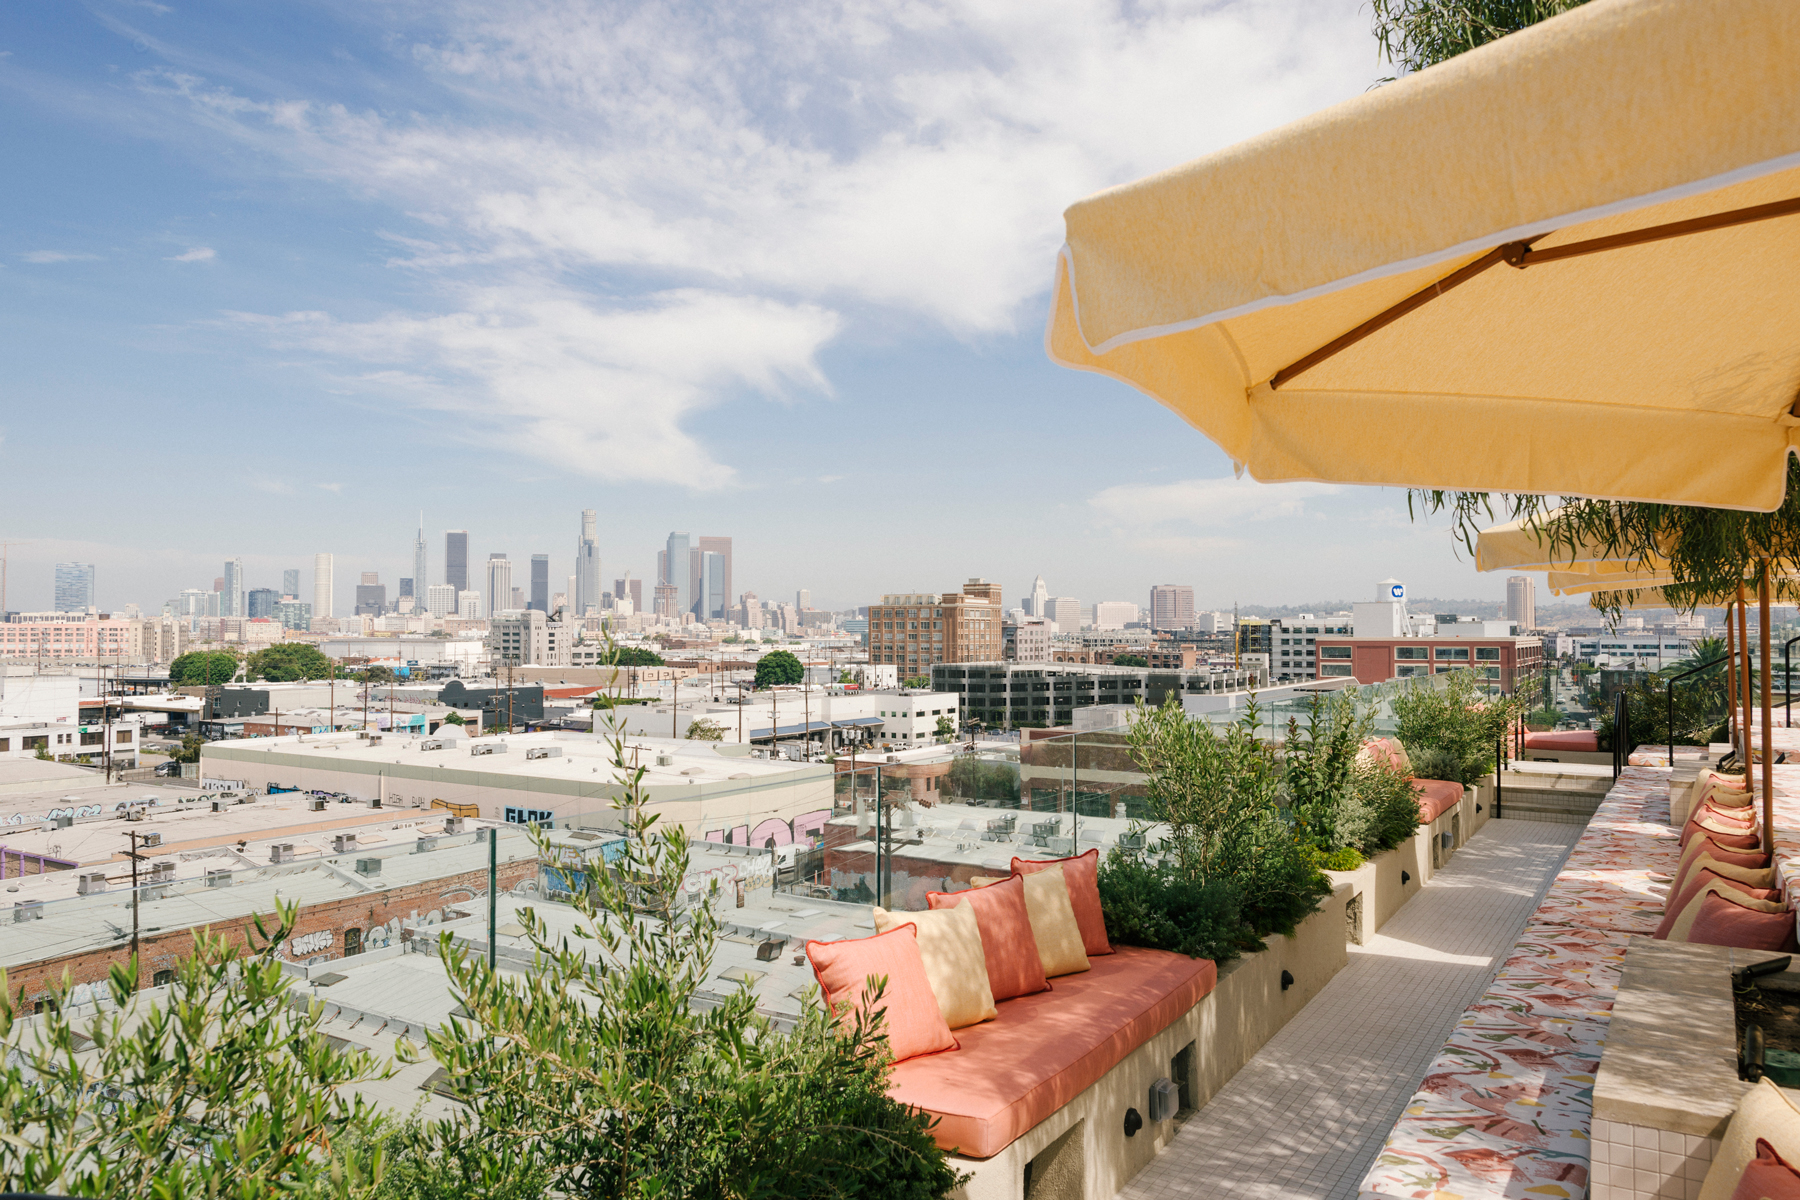 Los Angeles is on a hotel roll